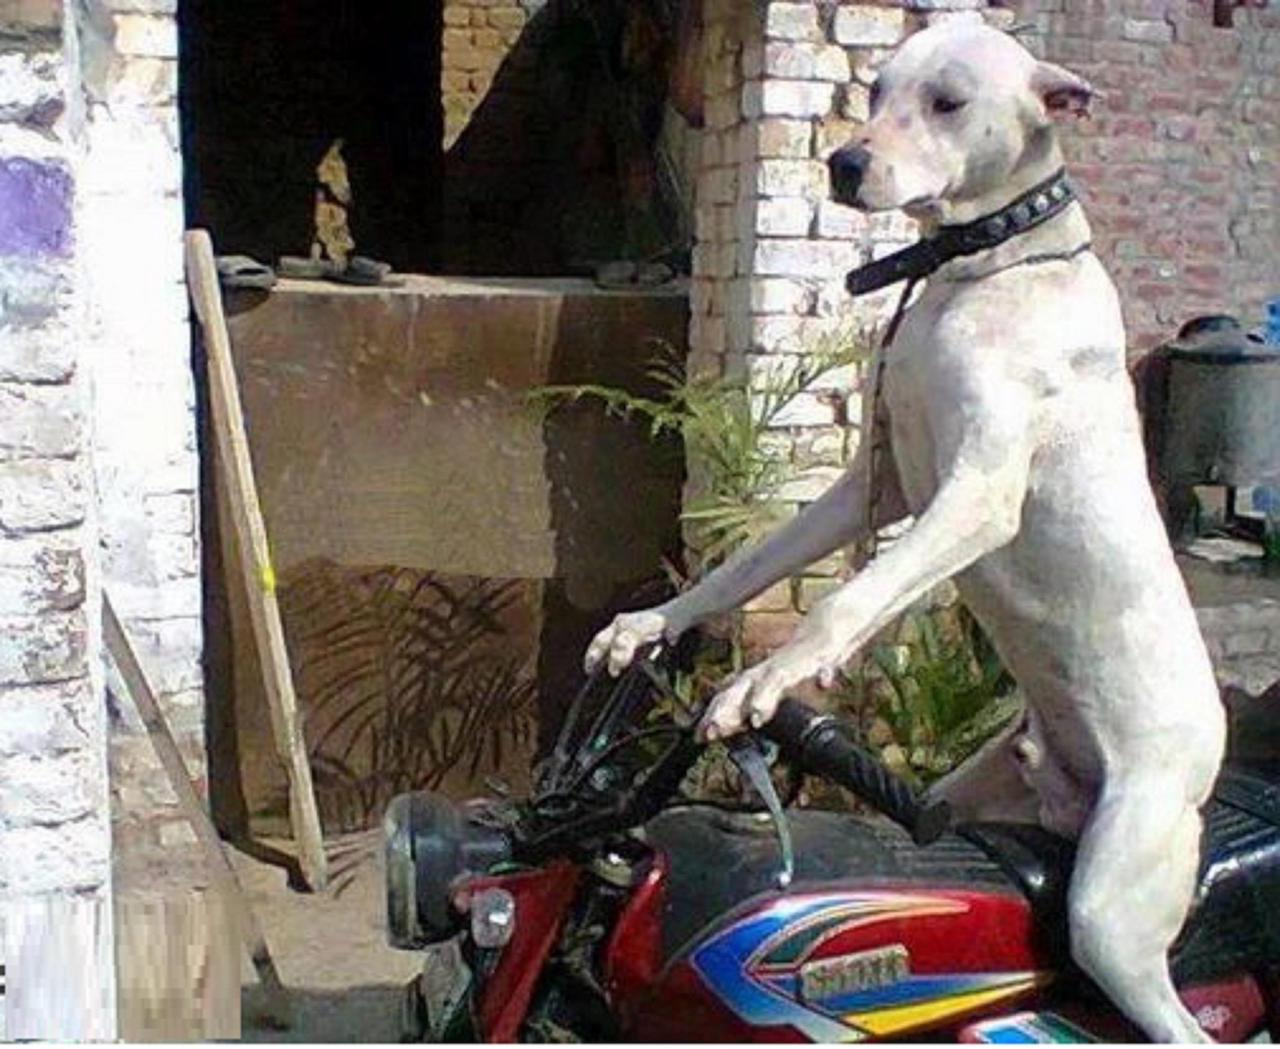 dog-riding-bike-funny-pictures-5956.jpg